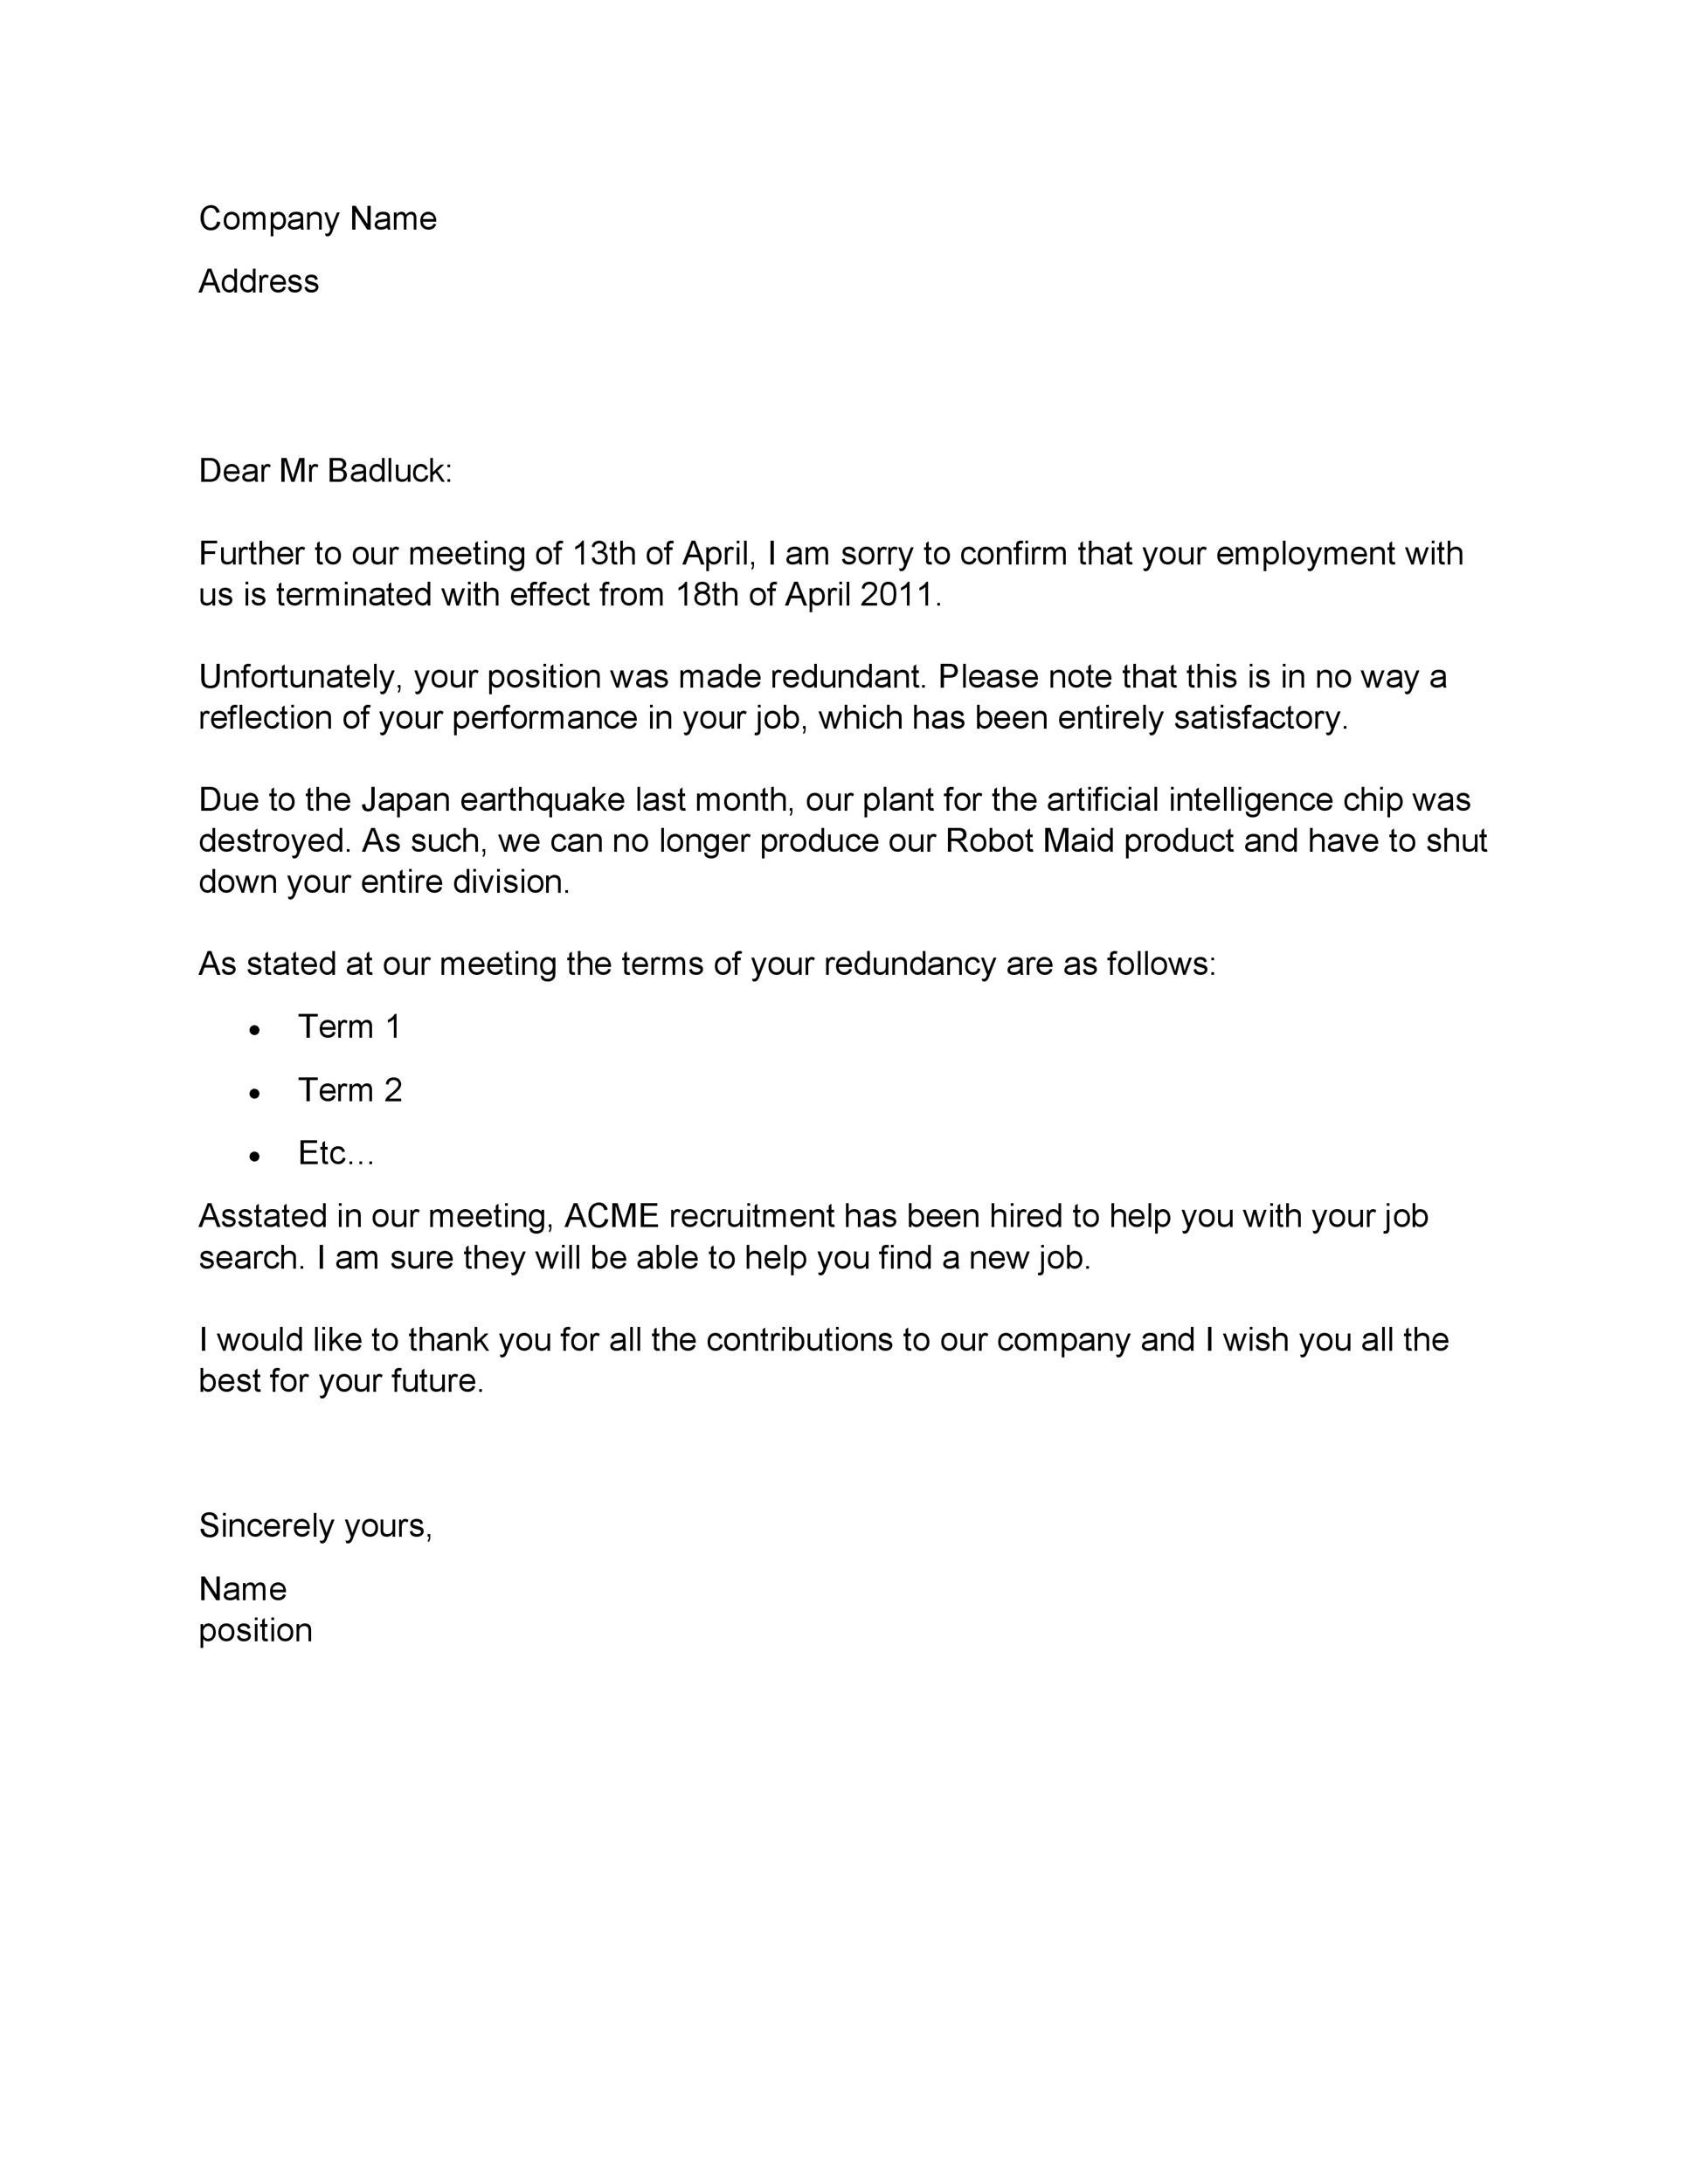 35 Perfect Termination Letter Samples Lease Employee Contract – Format for Termination Letter